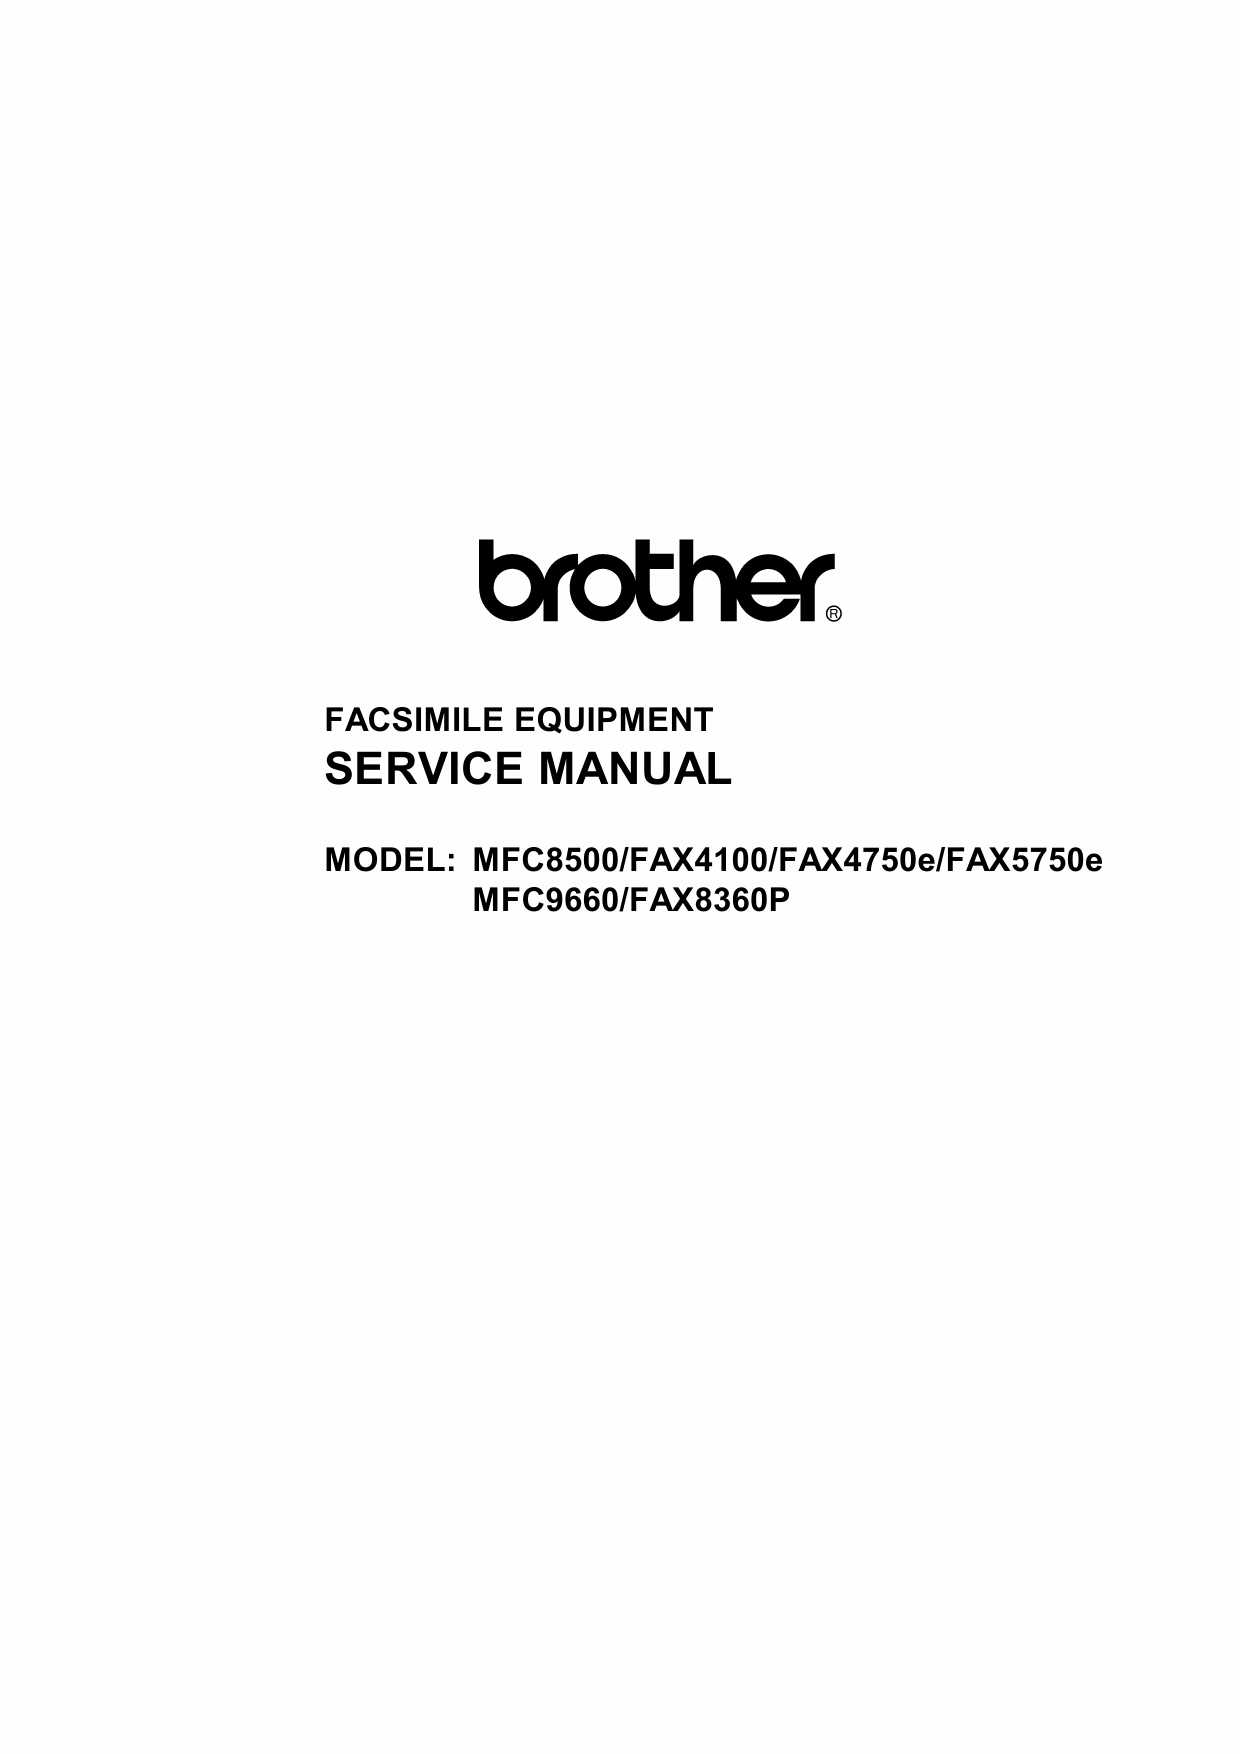 Brother MFC 8500 9660 FAX4100 5750 8360 Service Manual-1